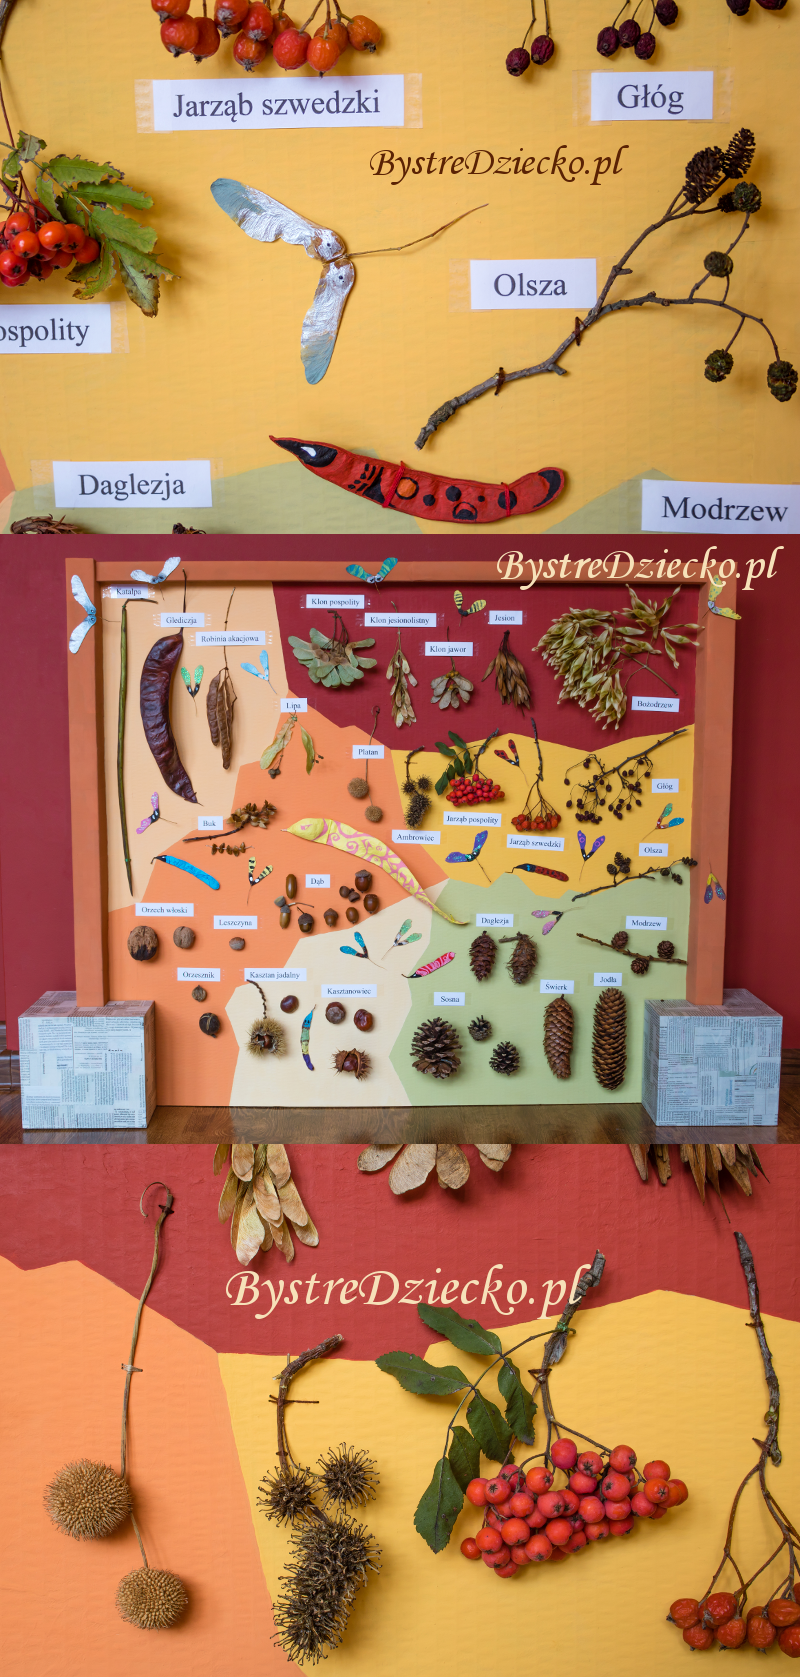 Fall, autumn crafts - Educational board for kids, botanical model of fruit trees - cone, maple, acacia, rowan, etc.